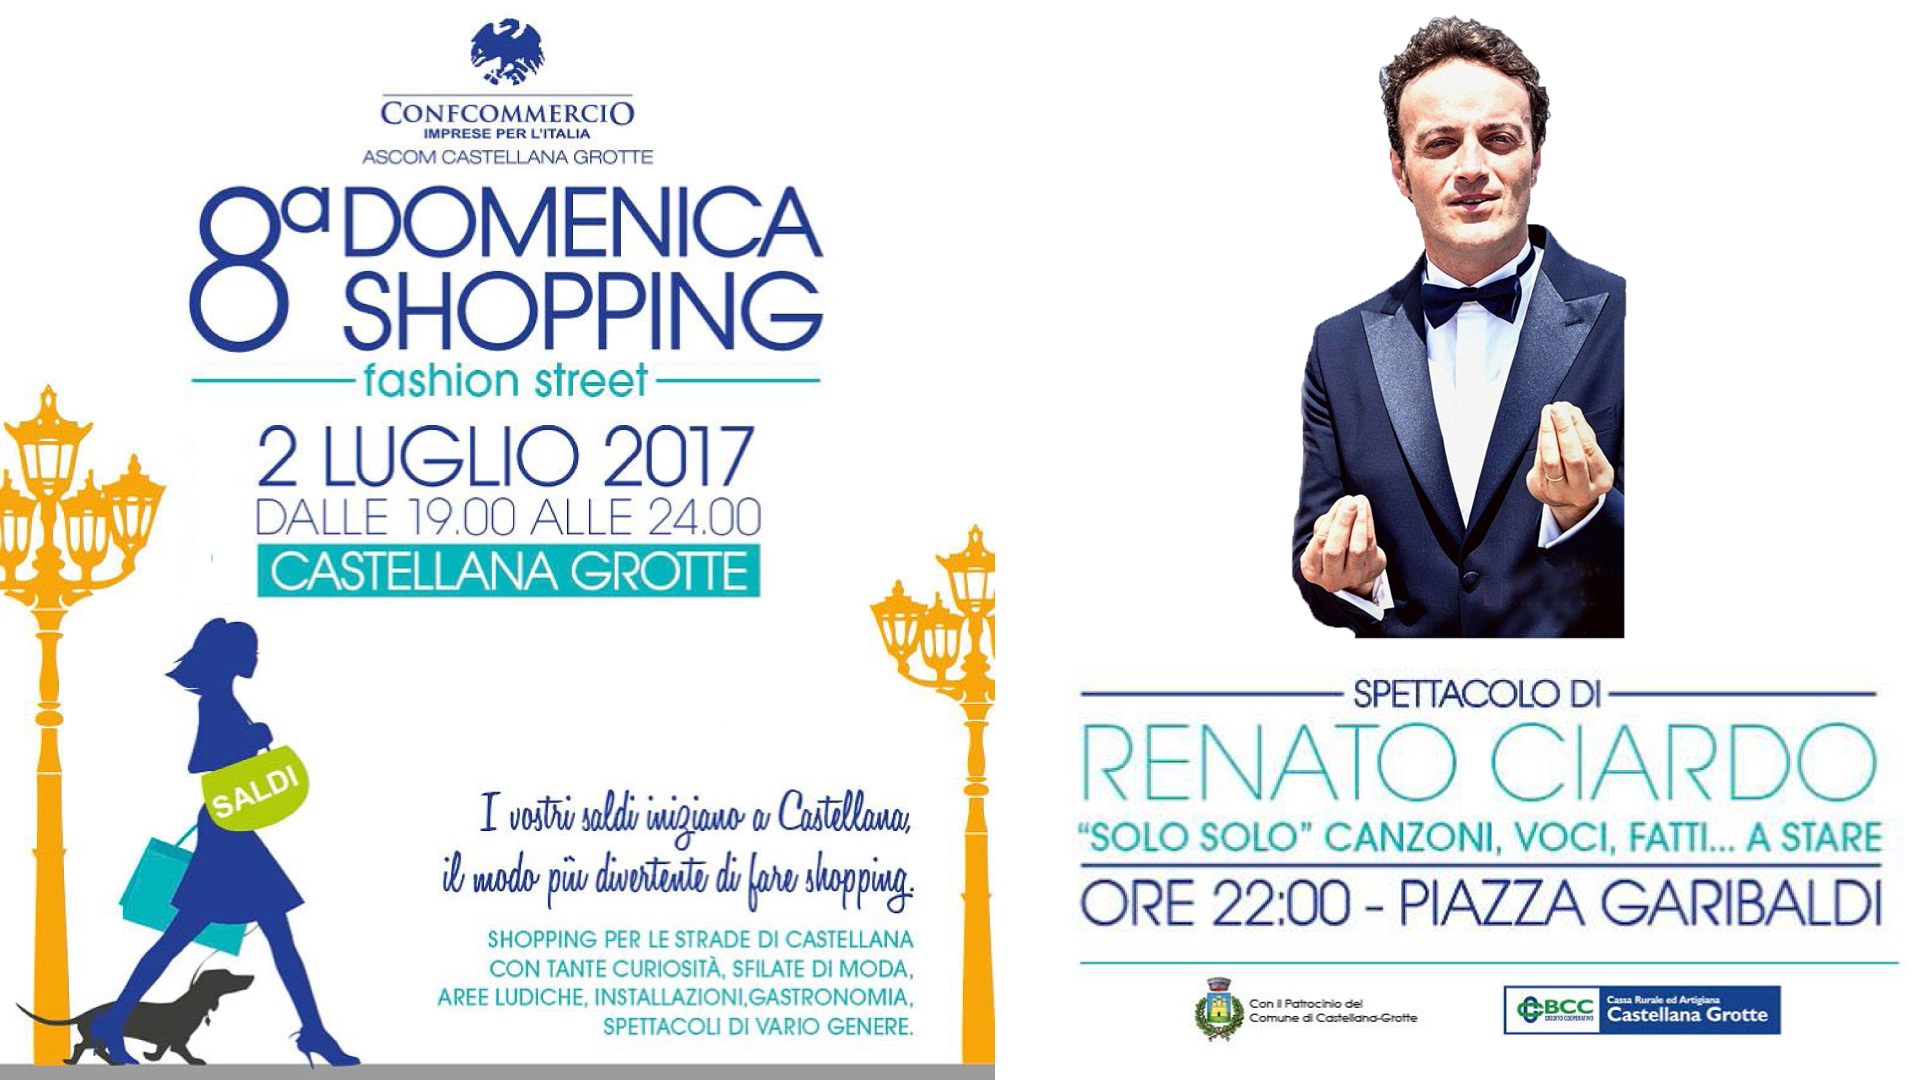 8° Domenica Shopping a Castellana Grotte